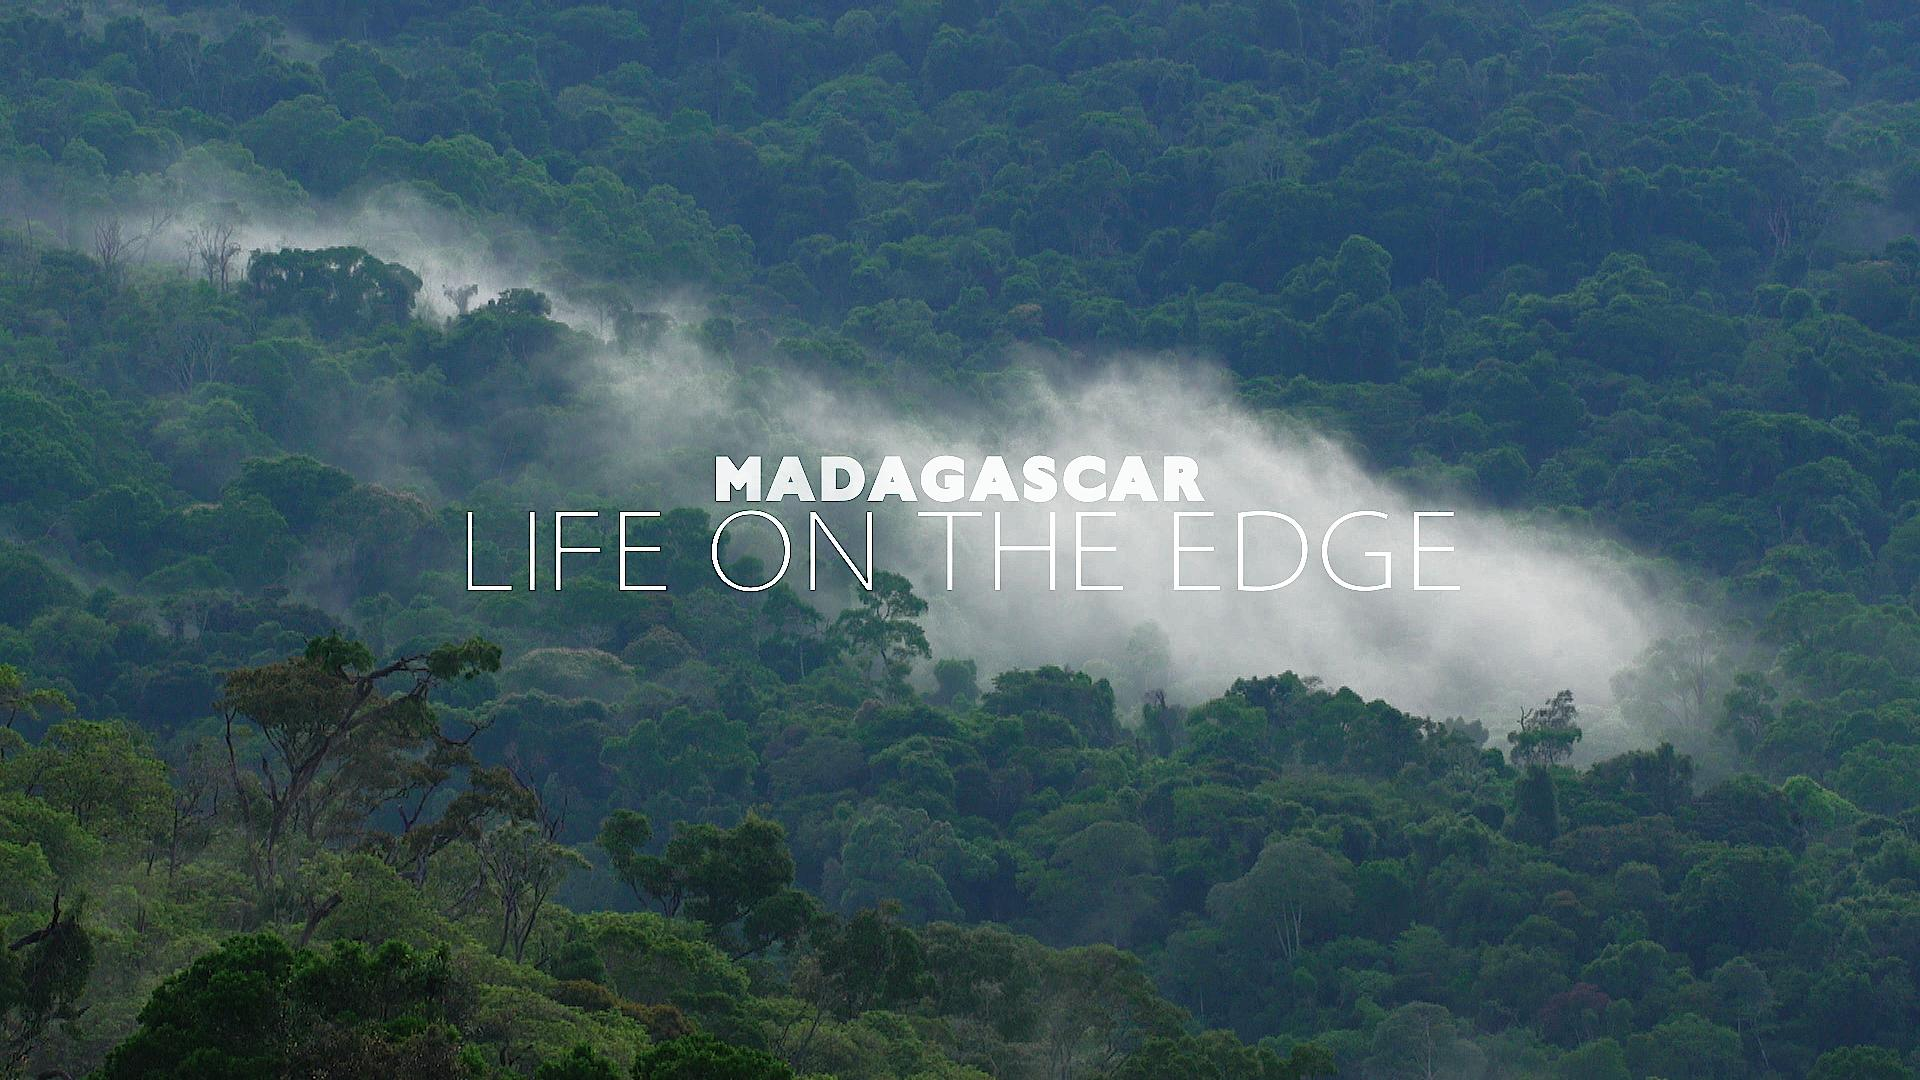 Madagascar Life On The Edge